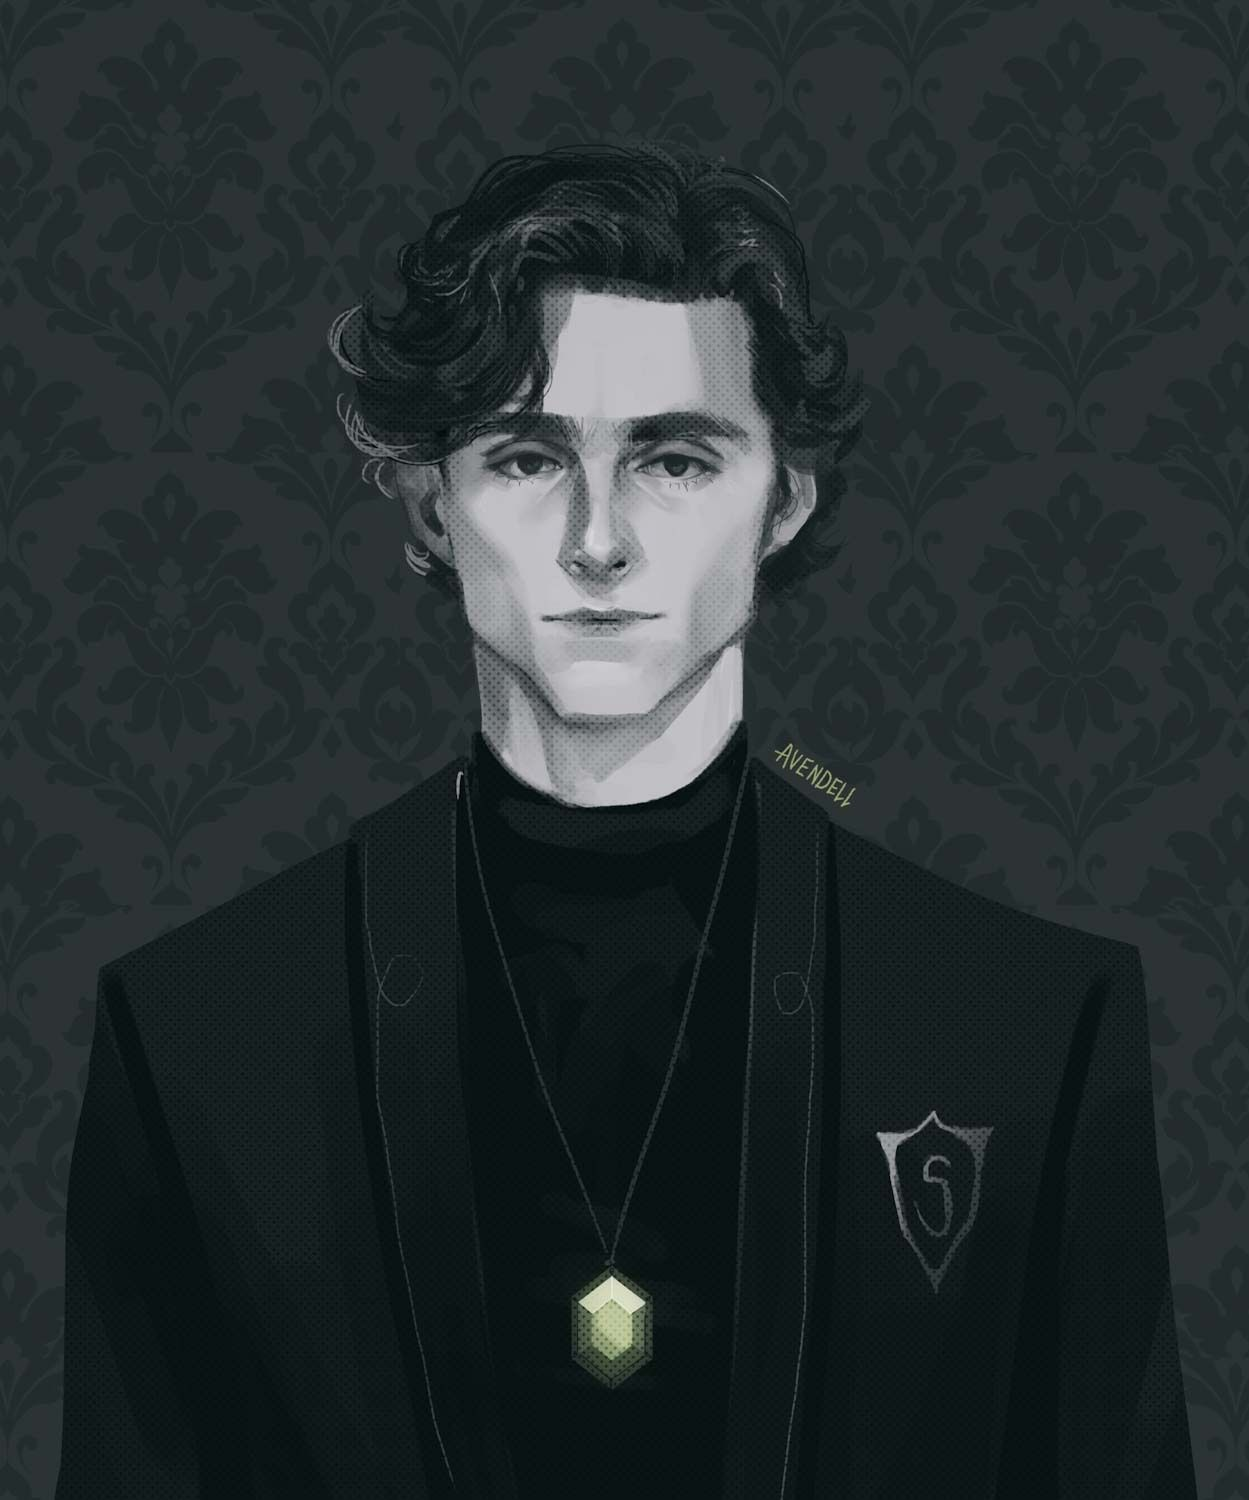 Avendell R A B In 2021 Harry Potter Artwork Harry Potter Drawings Harry Potter Pictures